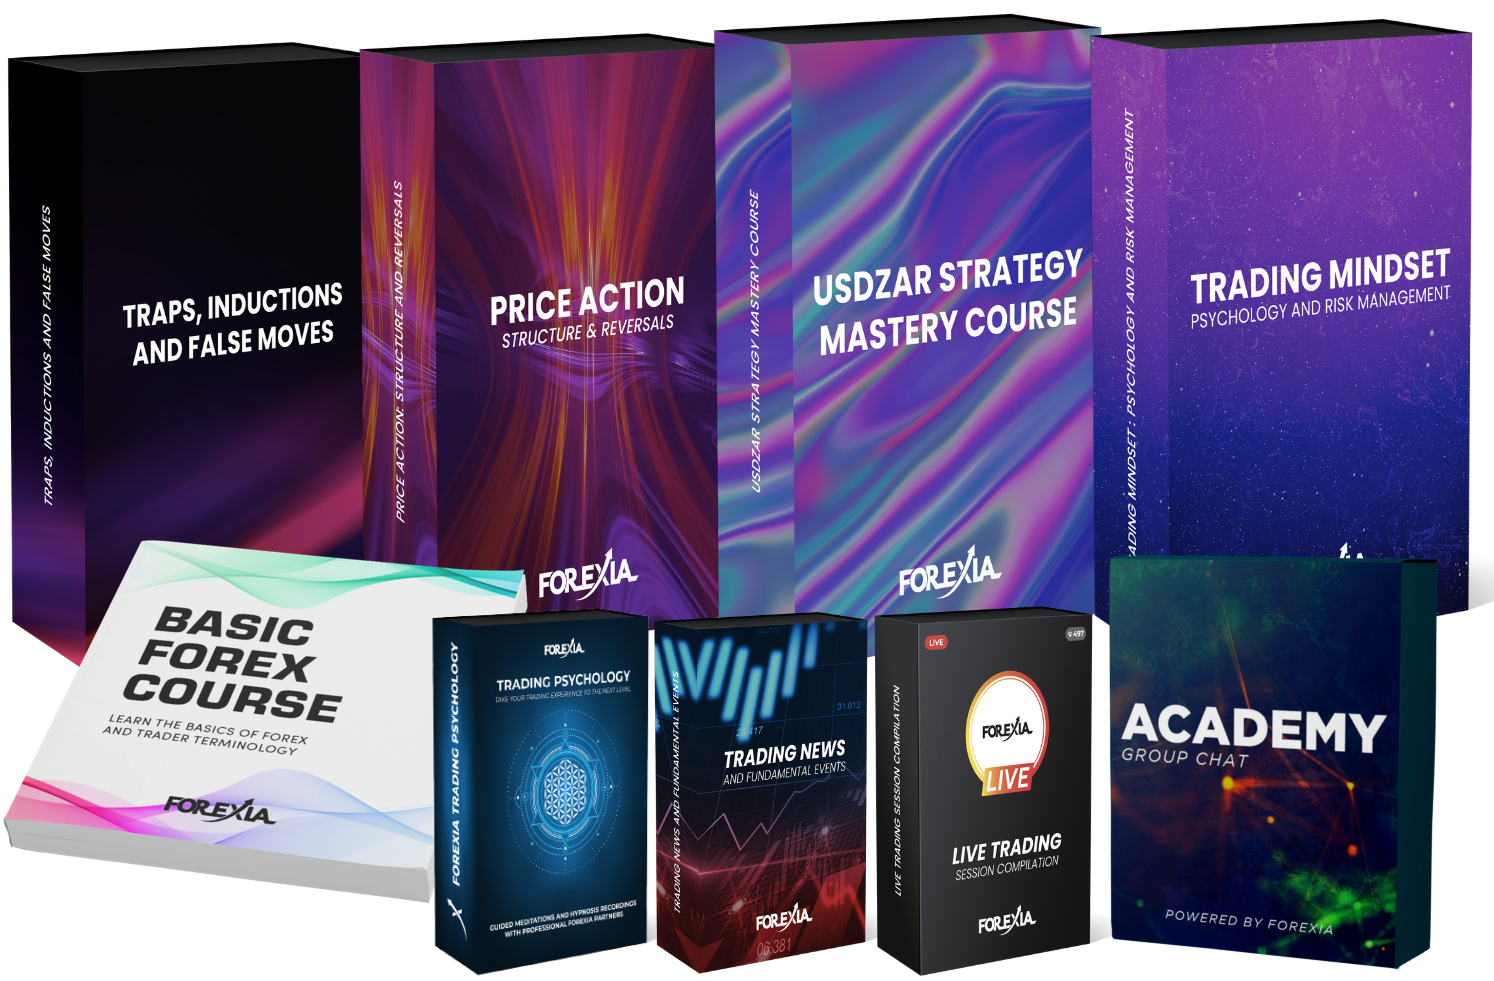 All courses in the forexia academy package and much more included in the forexia academy.